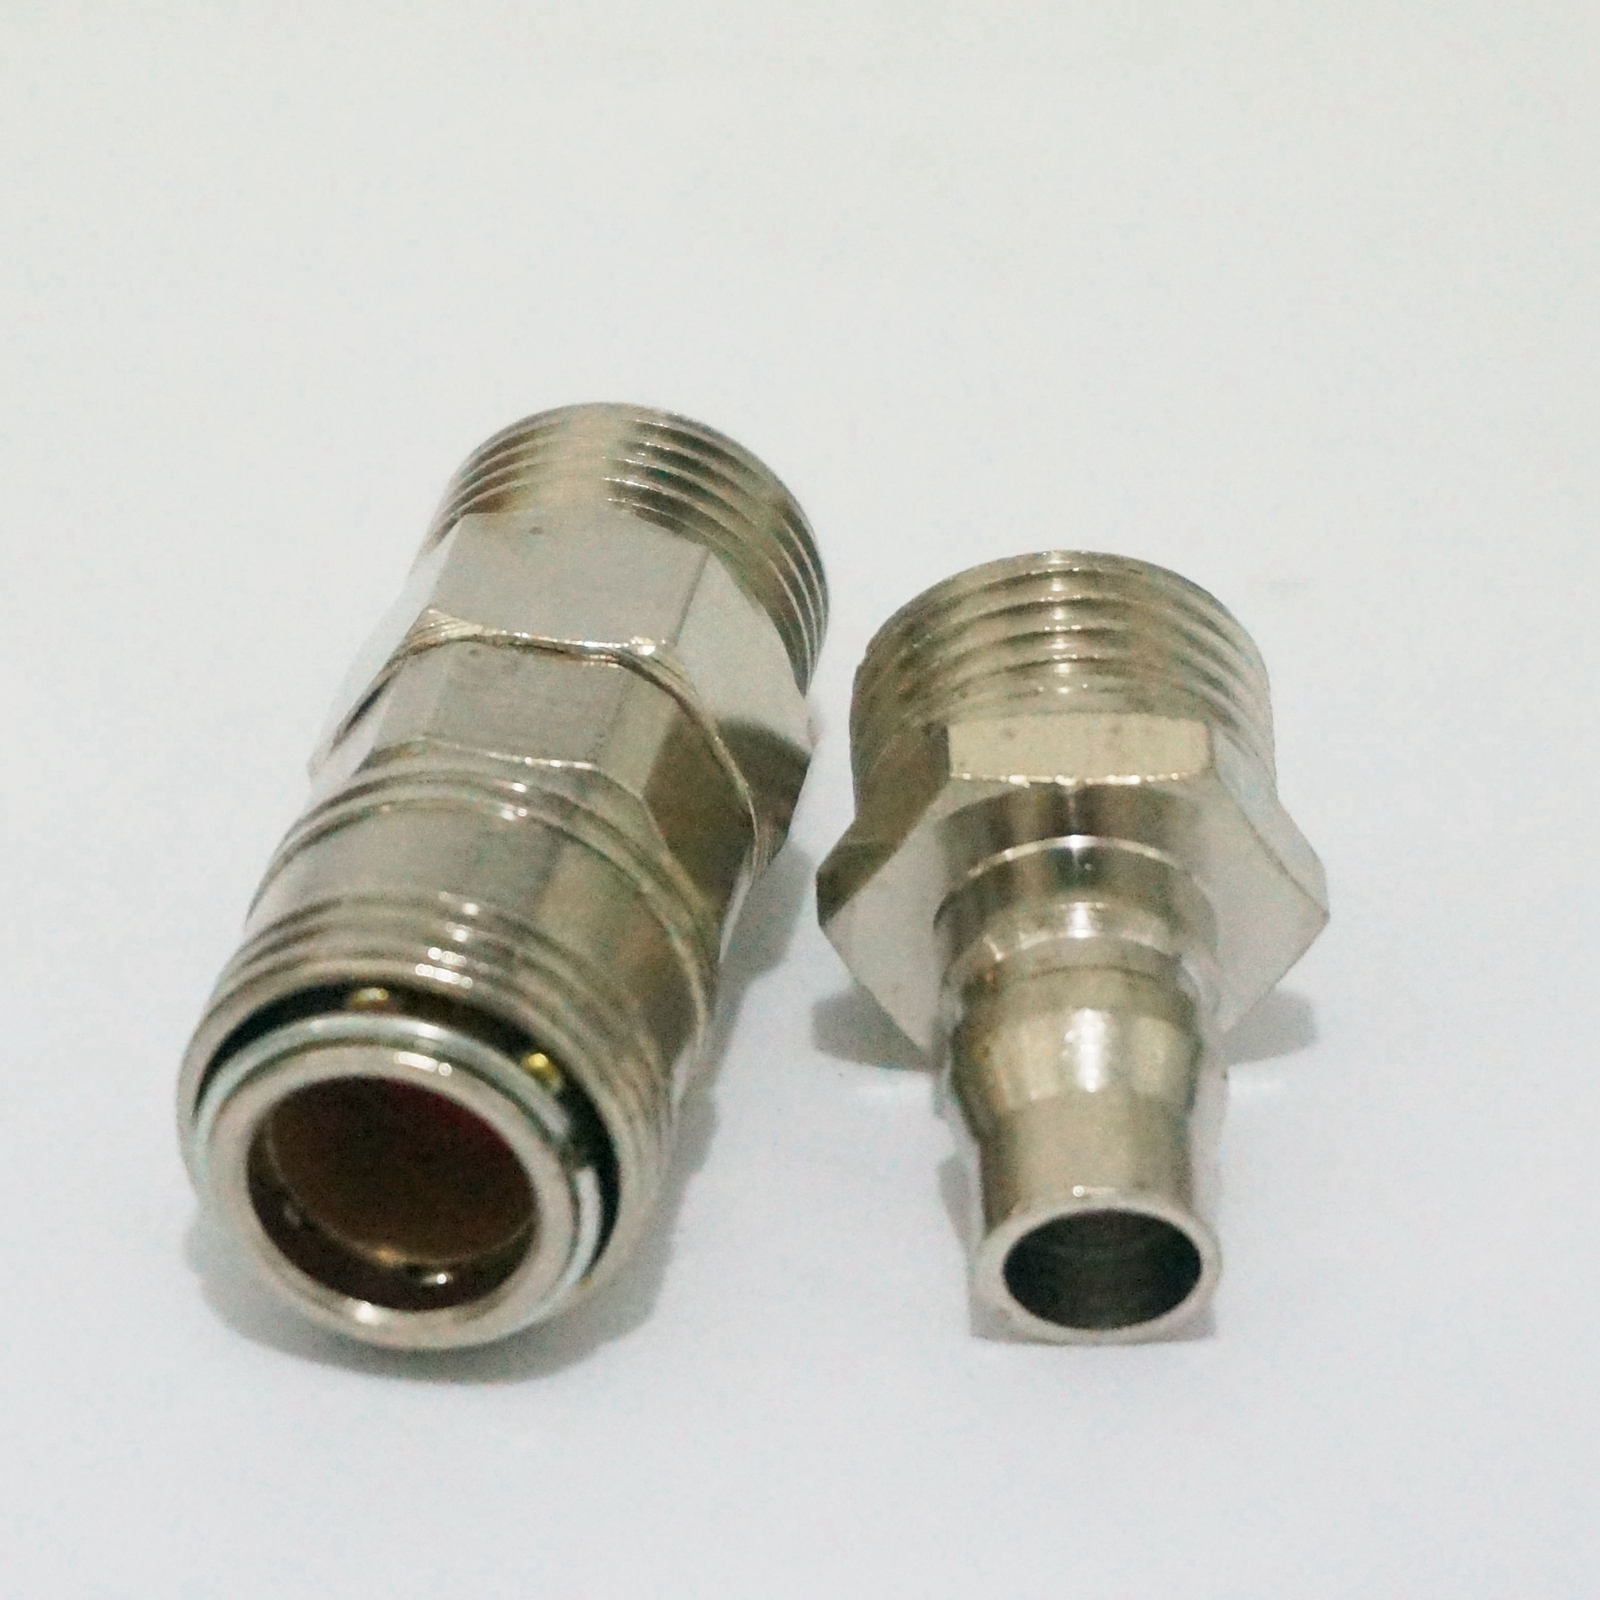 PM20 8mm Barbed Pneumatic Air Line Male Hose Quick Fitting Connector Coupler